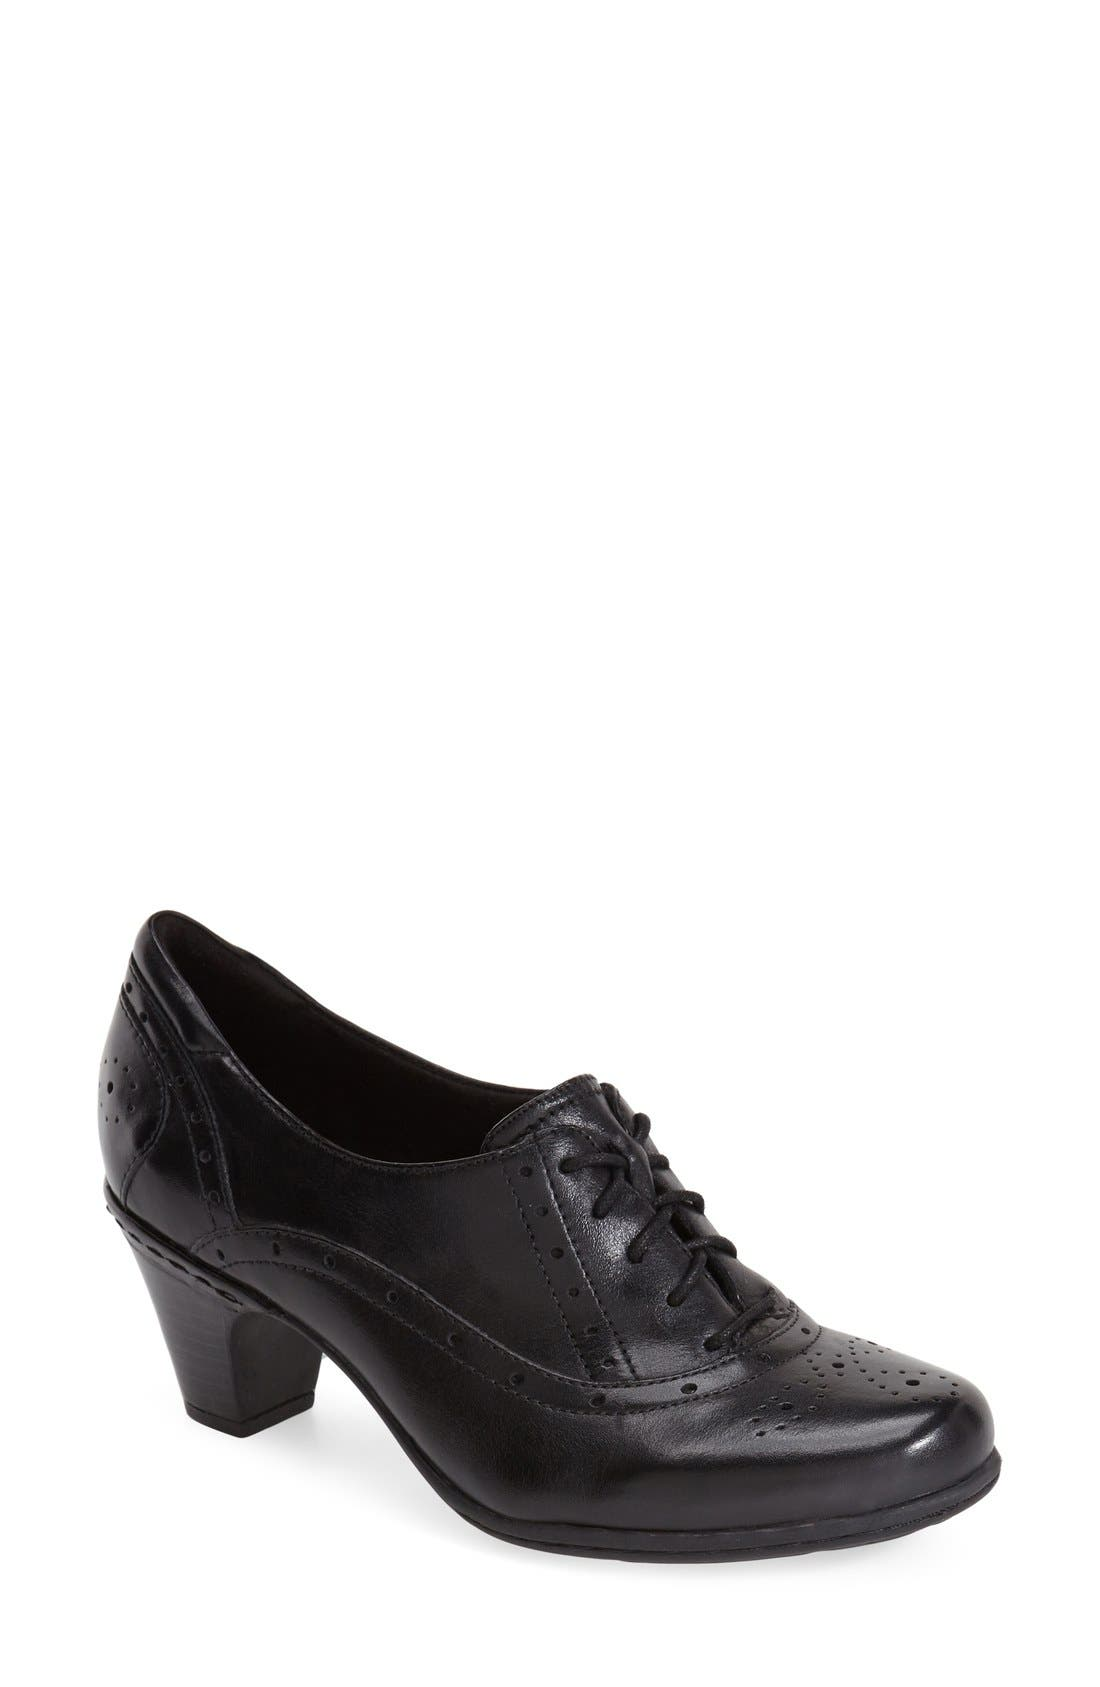 Alternate Image 1 Selected - Cobb Hill 'Shayla' Lace Up Pump (Women)